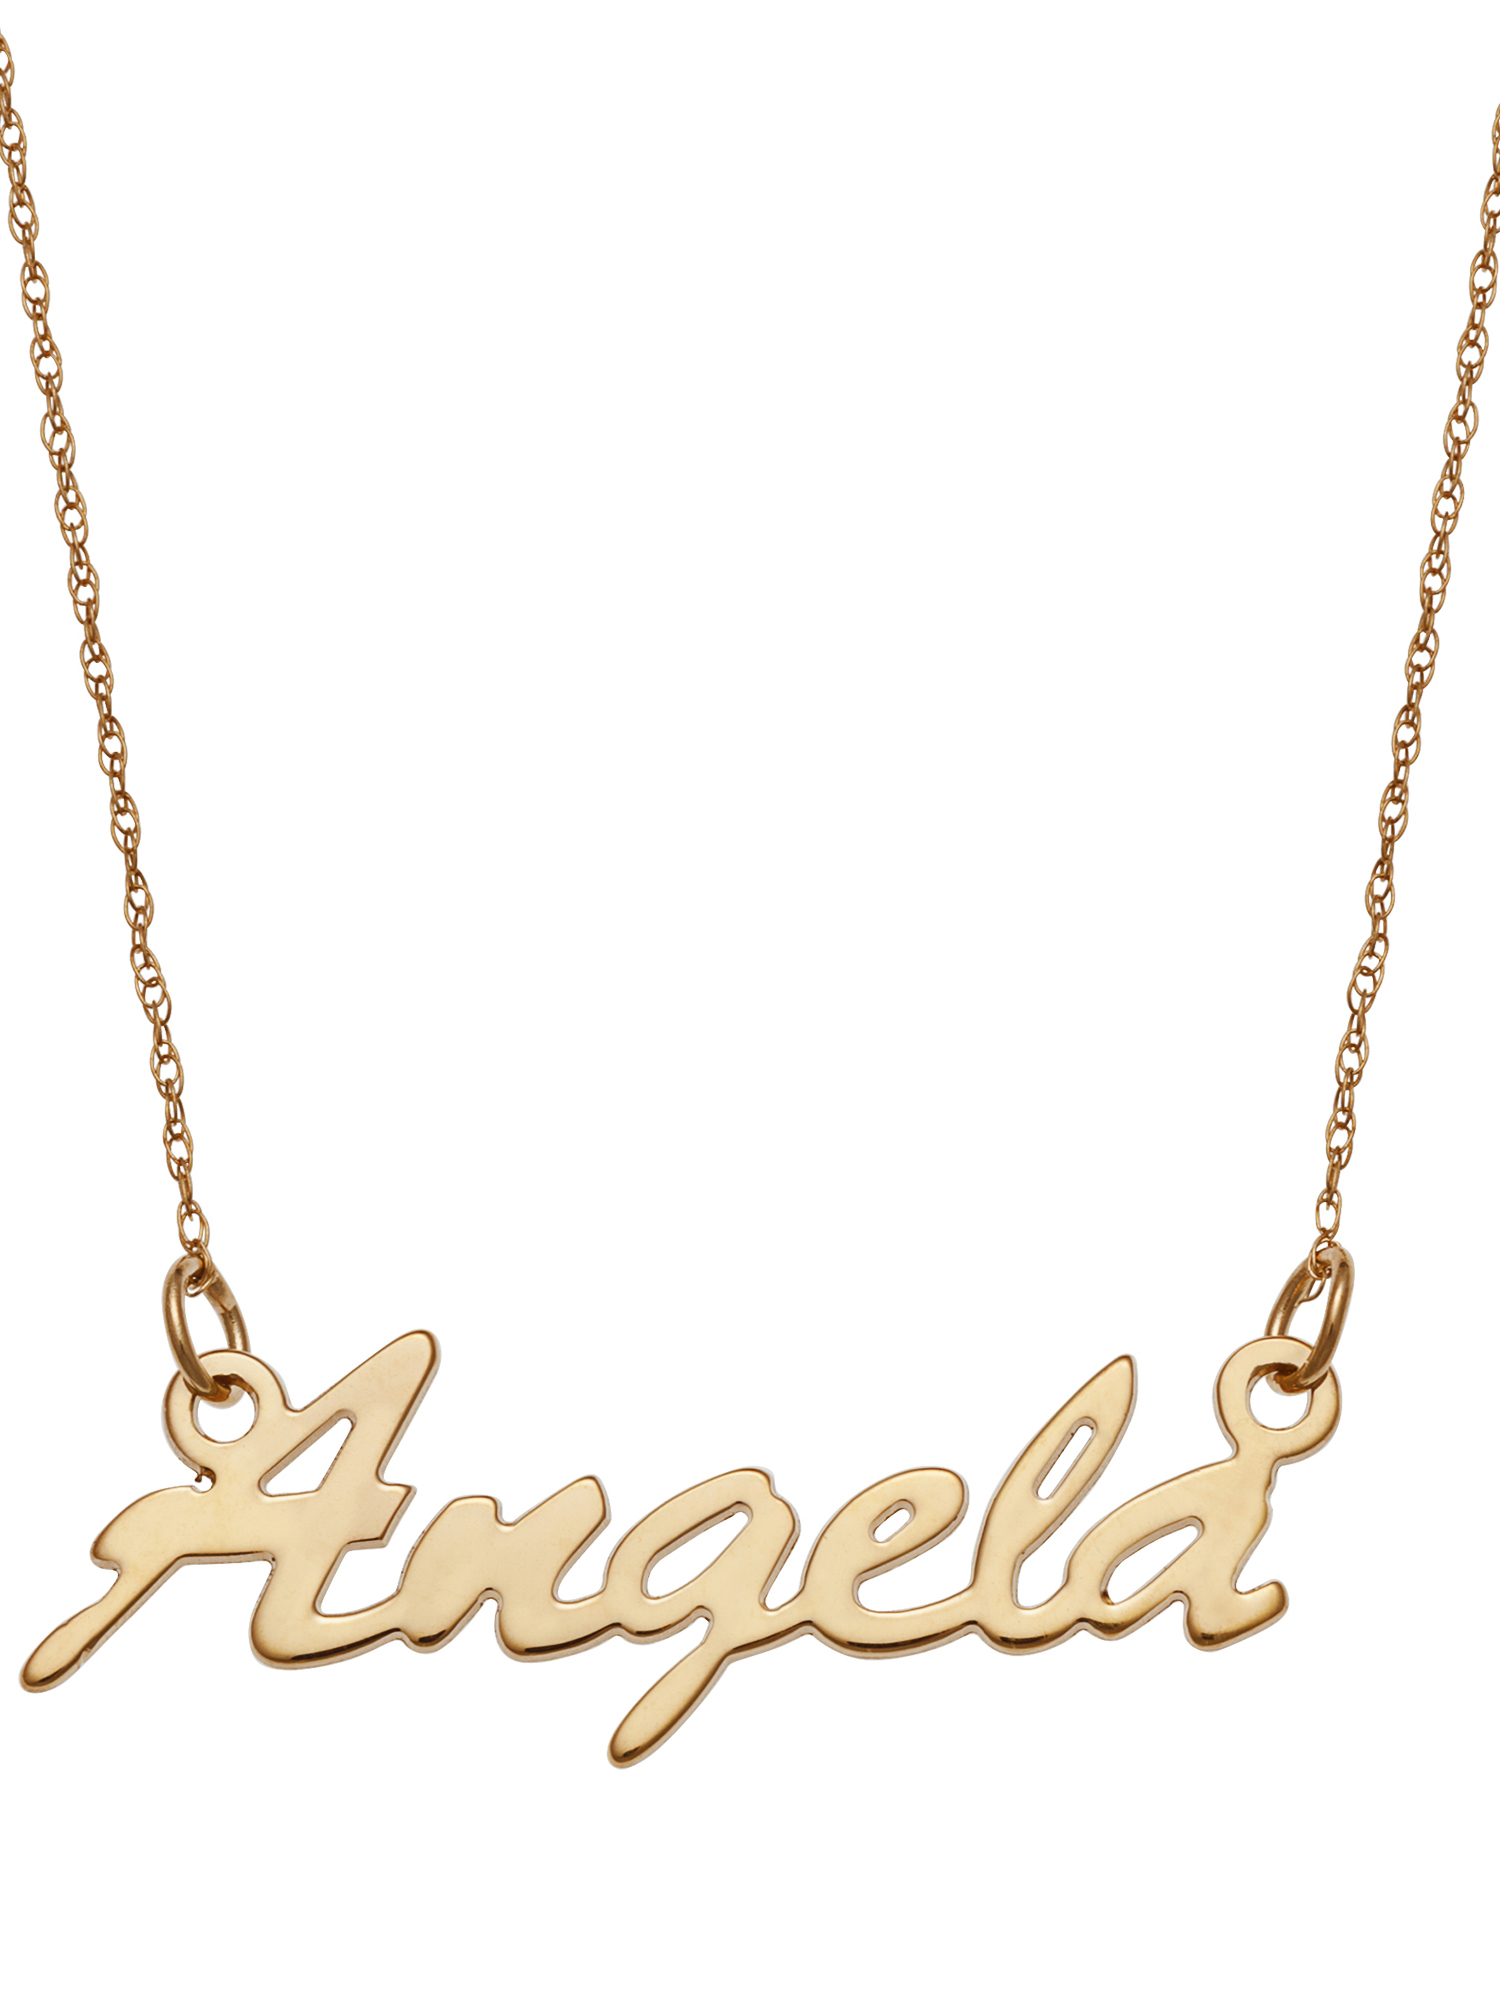 larger names kid personalised necklace designs by l posh bangles baby totty gold light weight view name